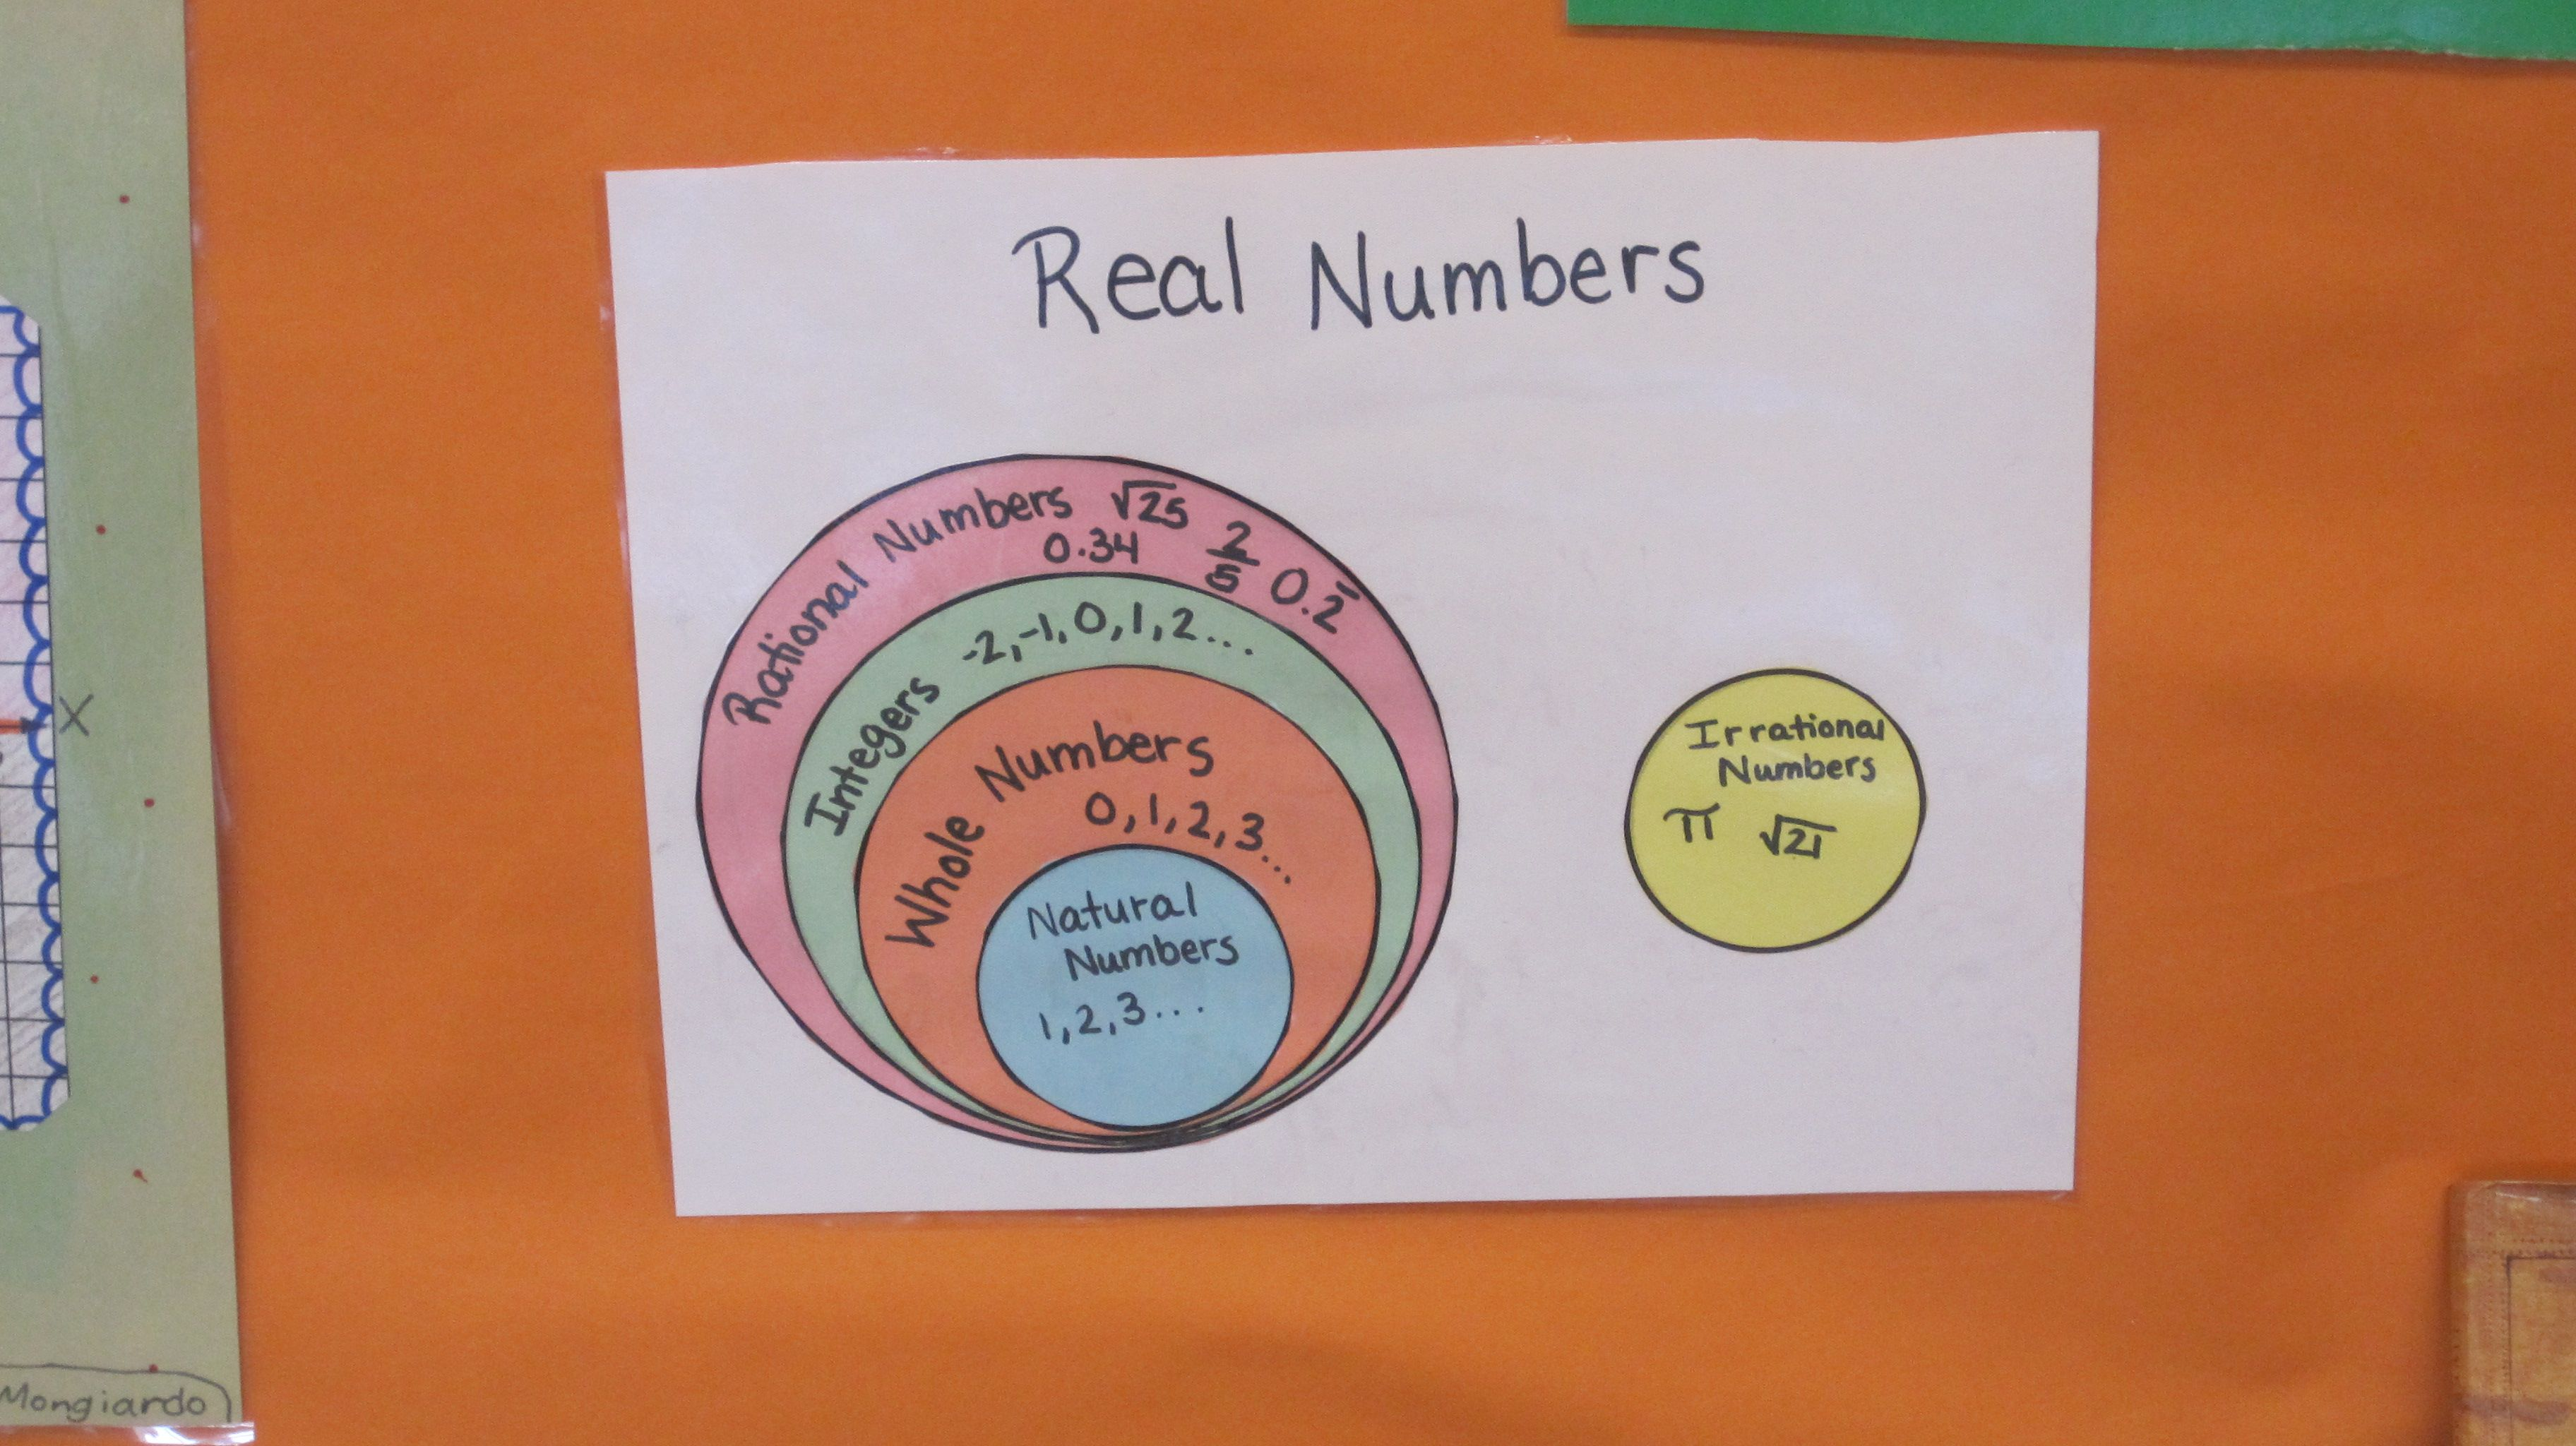 Real Numbers Graphic Organizer Graphic organizers, Keep